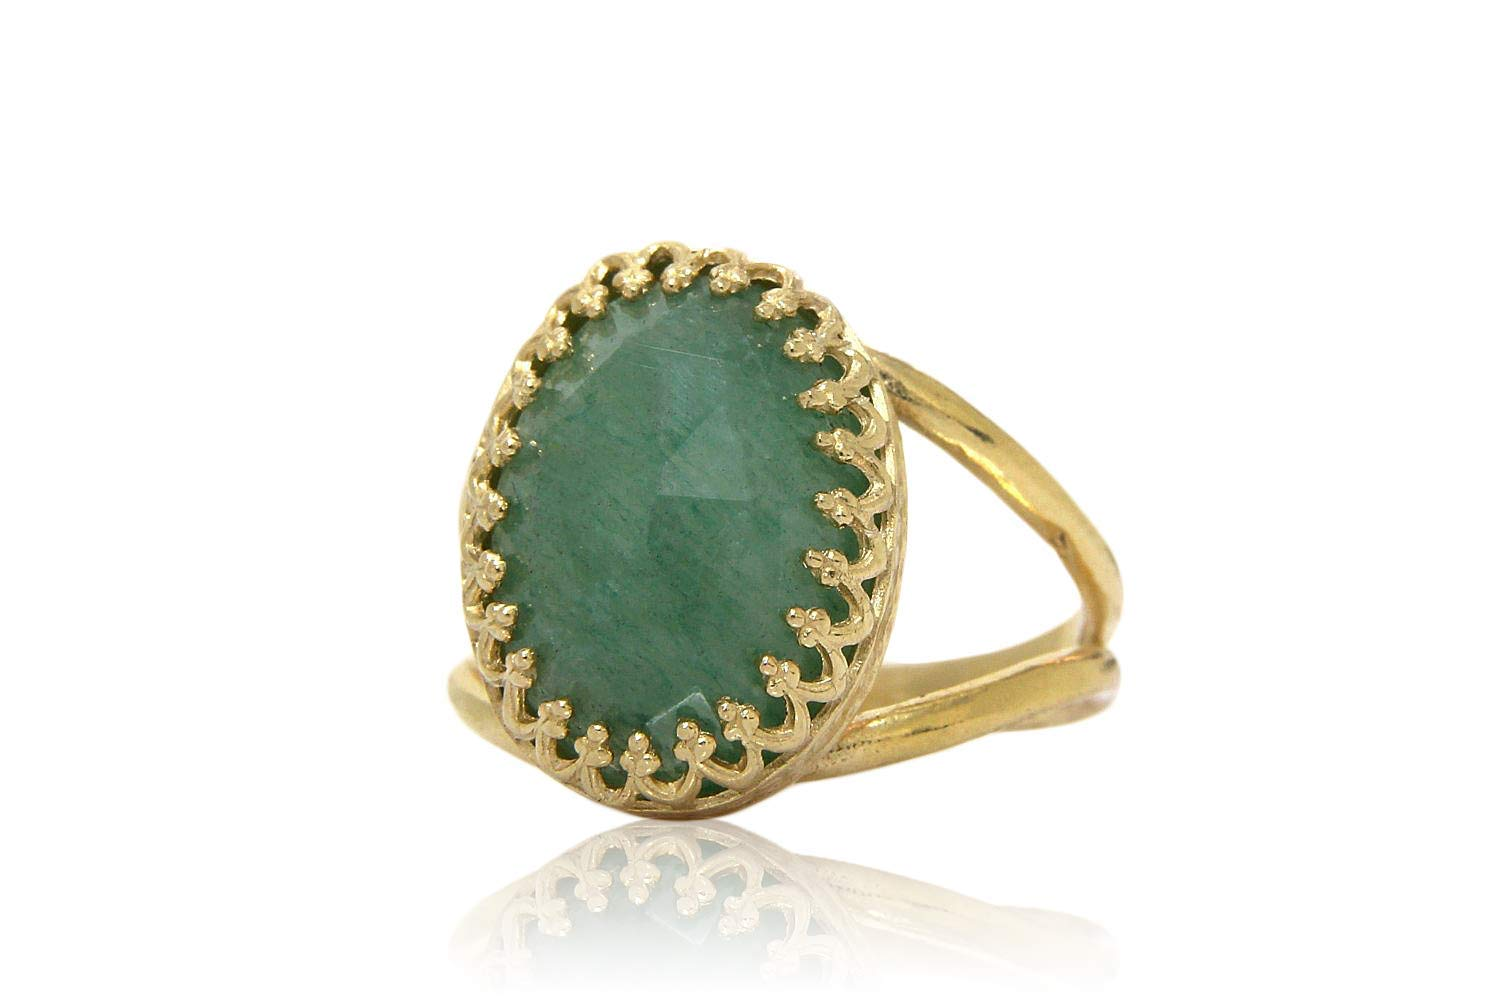 Handmade Lady Rings for Any Occasion Adorable Oval Rings for Women Free Gift Box Anemone Jewelry Exquisite Green Aventurine Ring in 14k Gold-filled Band